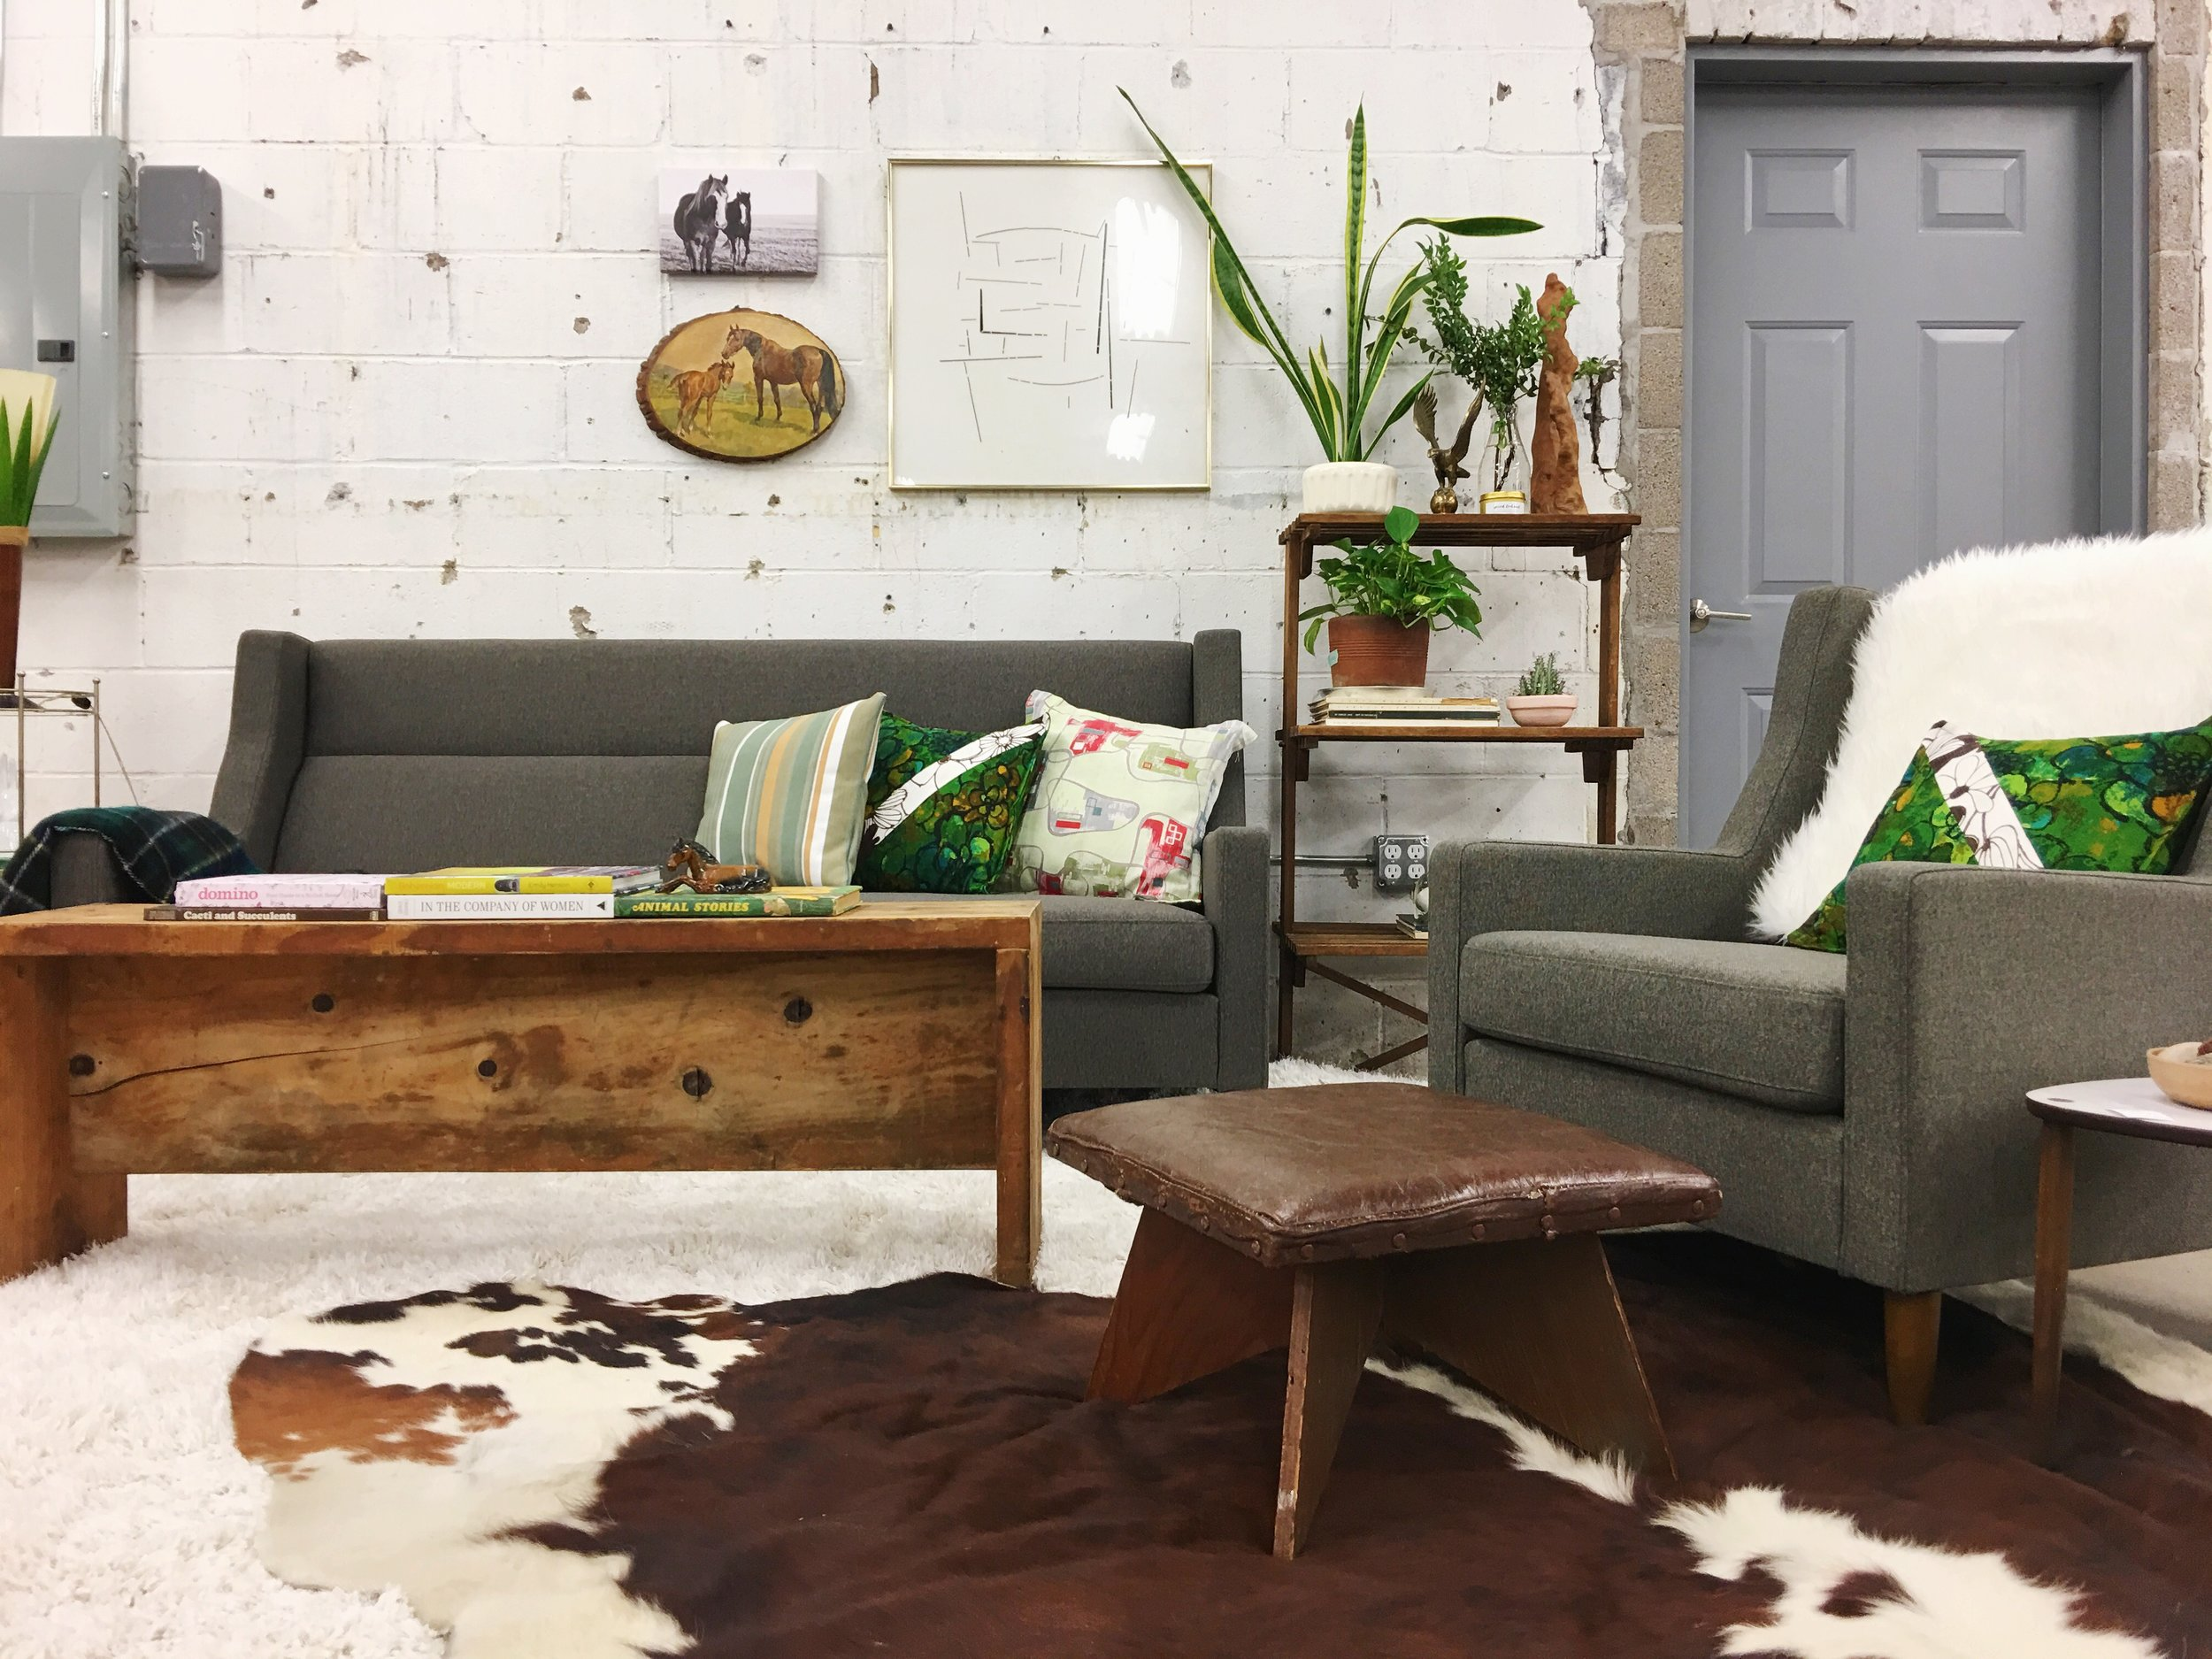 The unfinished wooden bench, worn leather stool, and horse art (Who doesn't love horse art?) are beautiful juxtapositions to the clean-lined, modern  Gus* Carmichael sofa and chair .